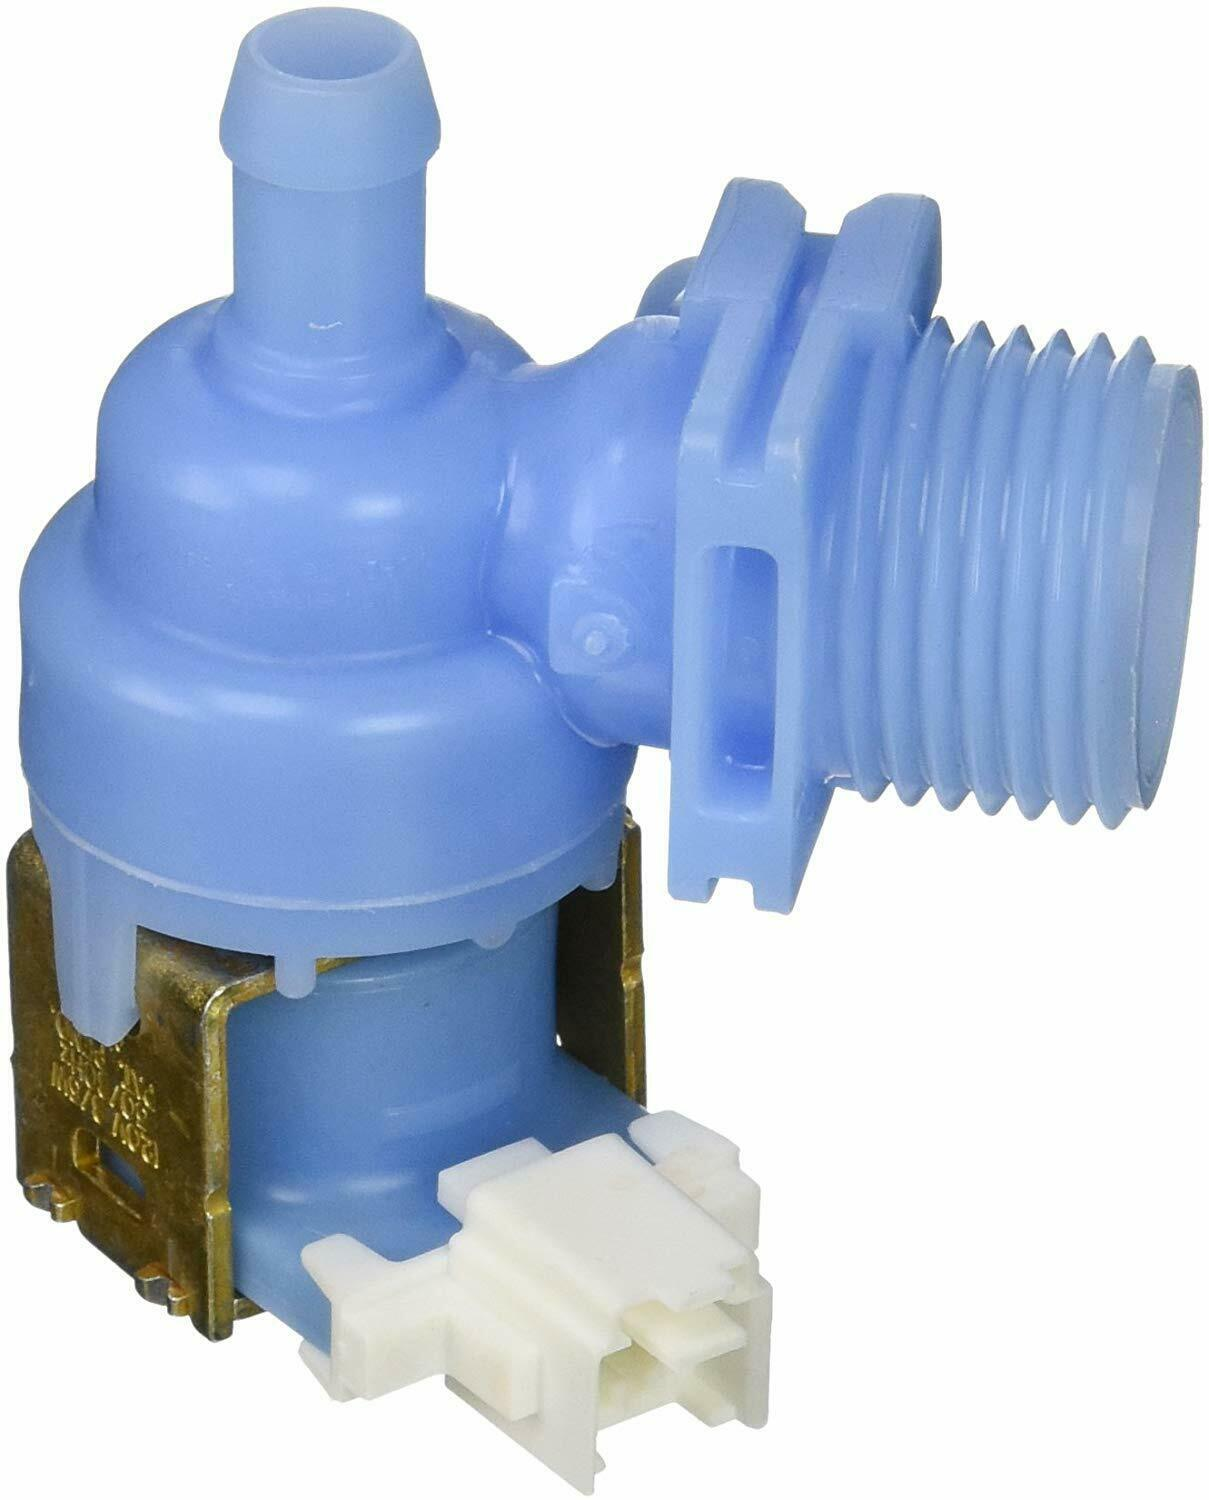 Primary image for Replacement Inlet Valve For Whirlpool W10327249 AP6019618 PS11752927 By OEM MFR